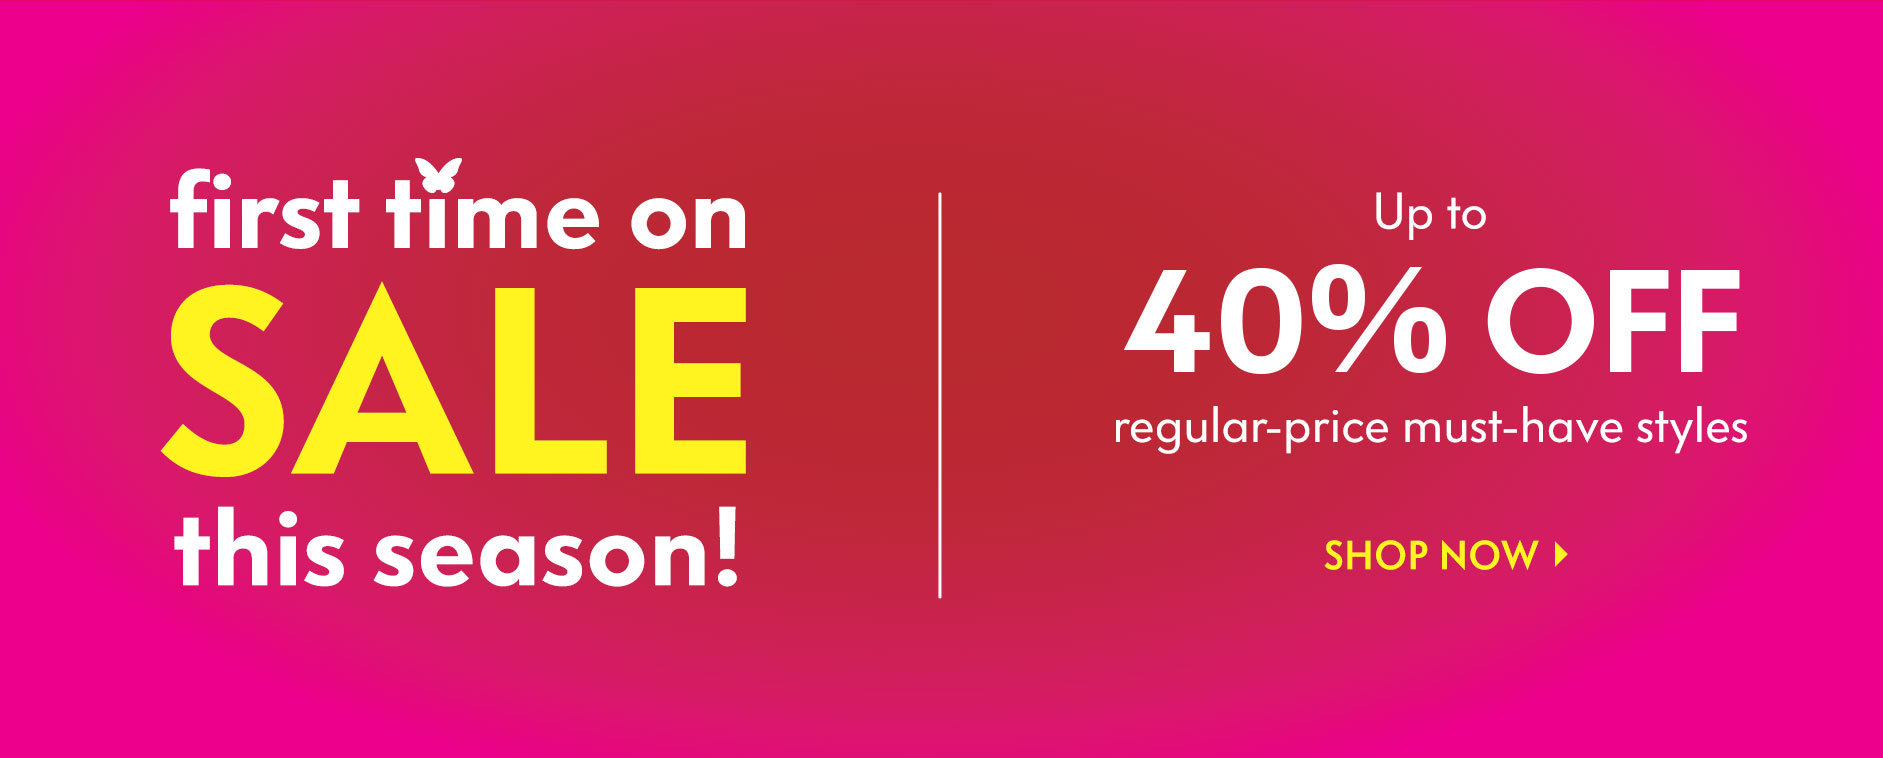 First time on Sale this season! Up to 40% off regular-price must-have styles